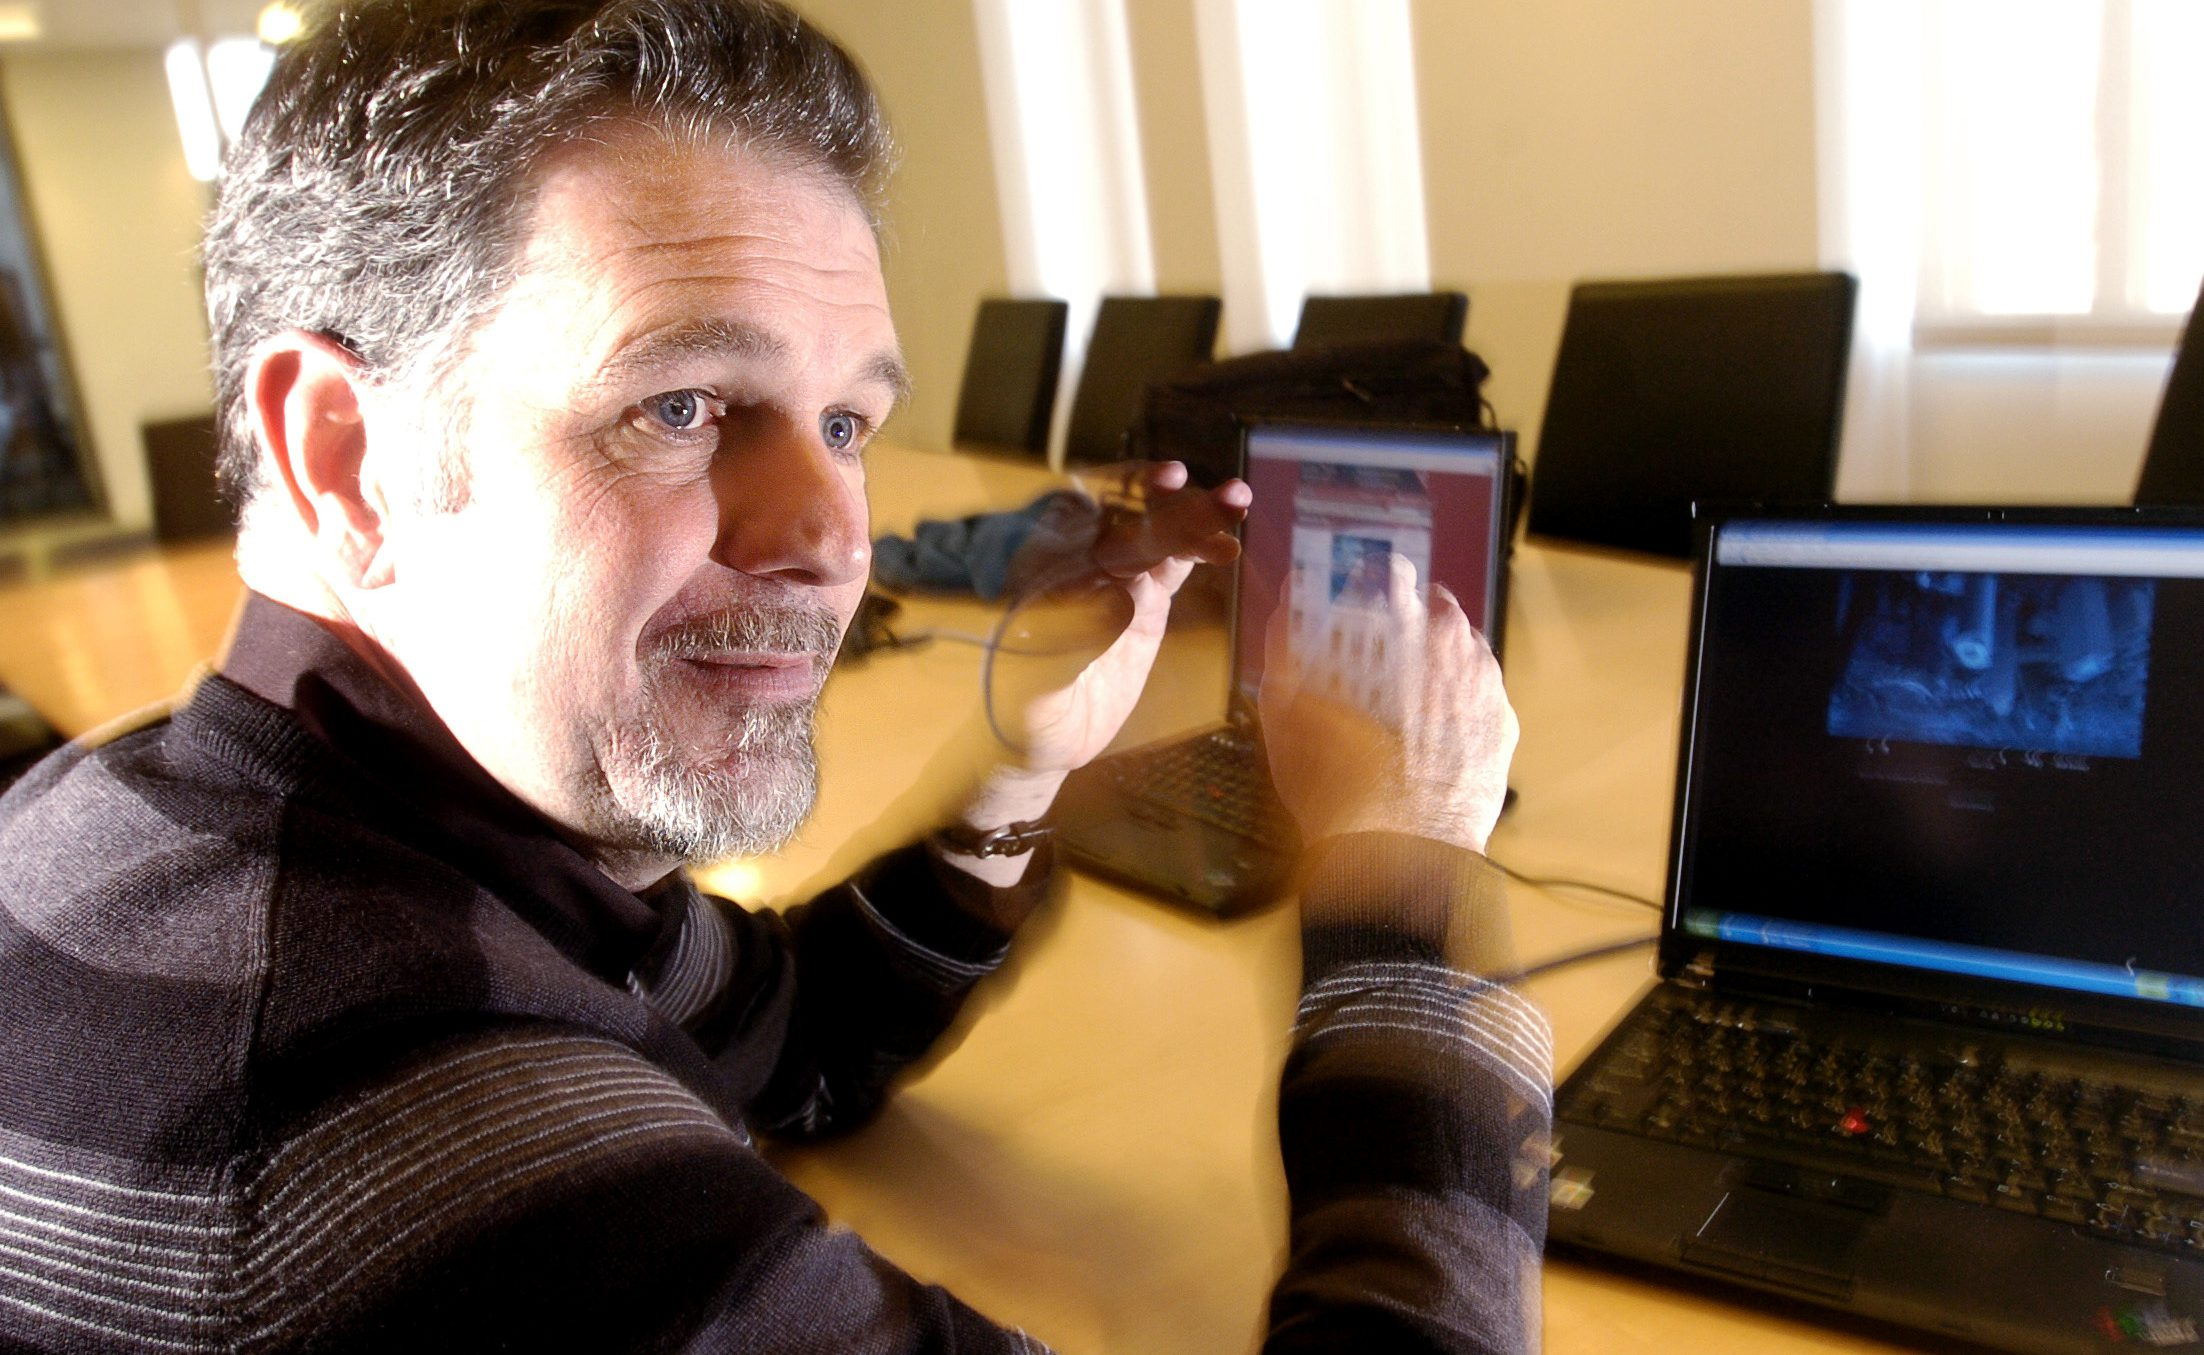 """**HOLD FOR RELEASE 12:01 A.M. EST TUESDAY. THIS STORY MAY NOT BE POSTED ONLINE, BROADCAST OR PUBLISHED BEFORE 12:01 A.M. EST TUESDAY.**  Netflix founder and CEO Reed Hastings demonstrates the """"Watch Now"""" feature on his company's website on Tuesday, Jan. 9, 2007, in Los Gatos, Calif. The company plans to unveil the new feature which allows users to watch movies and TV episodes over the Internet on Tuesday, Jan. 16, 2007, but only a small number of its more than 6 million subscribers will get immediate access to the service, which is being offered at no additional charge. (AP Photo/Noah Berger)   **ONLINE OUT UNTIL 12:01 A.M. EST TUESDAY**"""